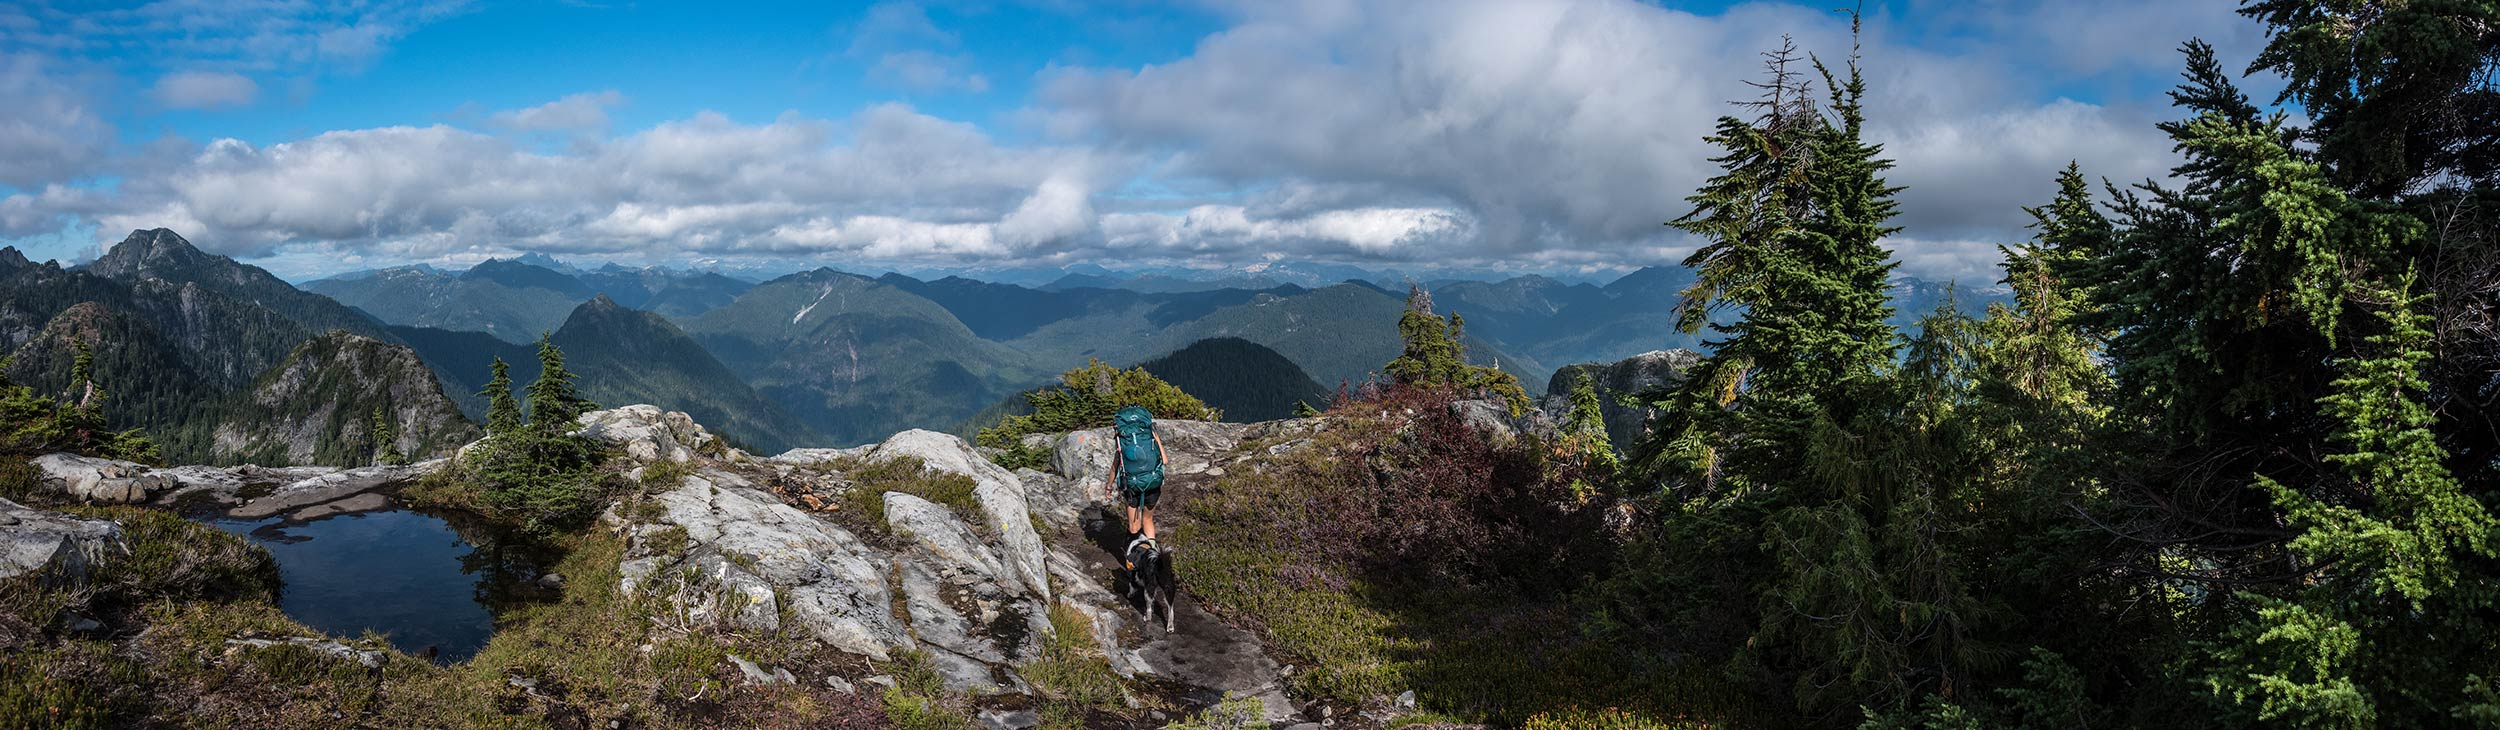 howe_sound_crest_trail_pan01.jpg